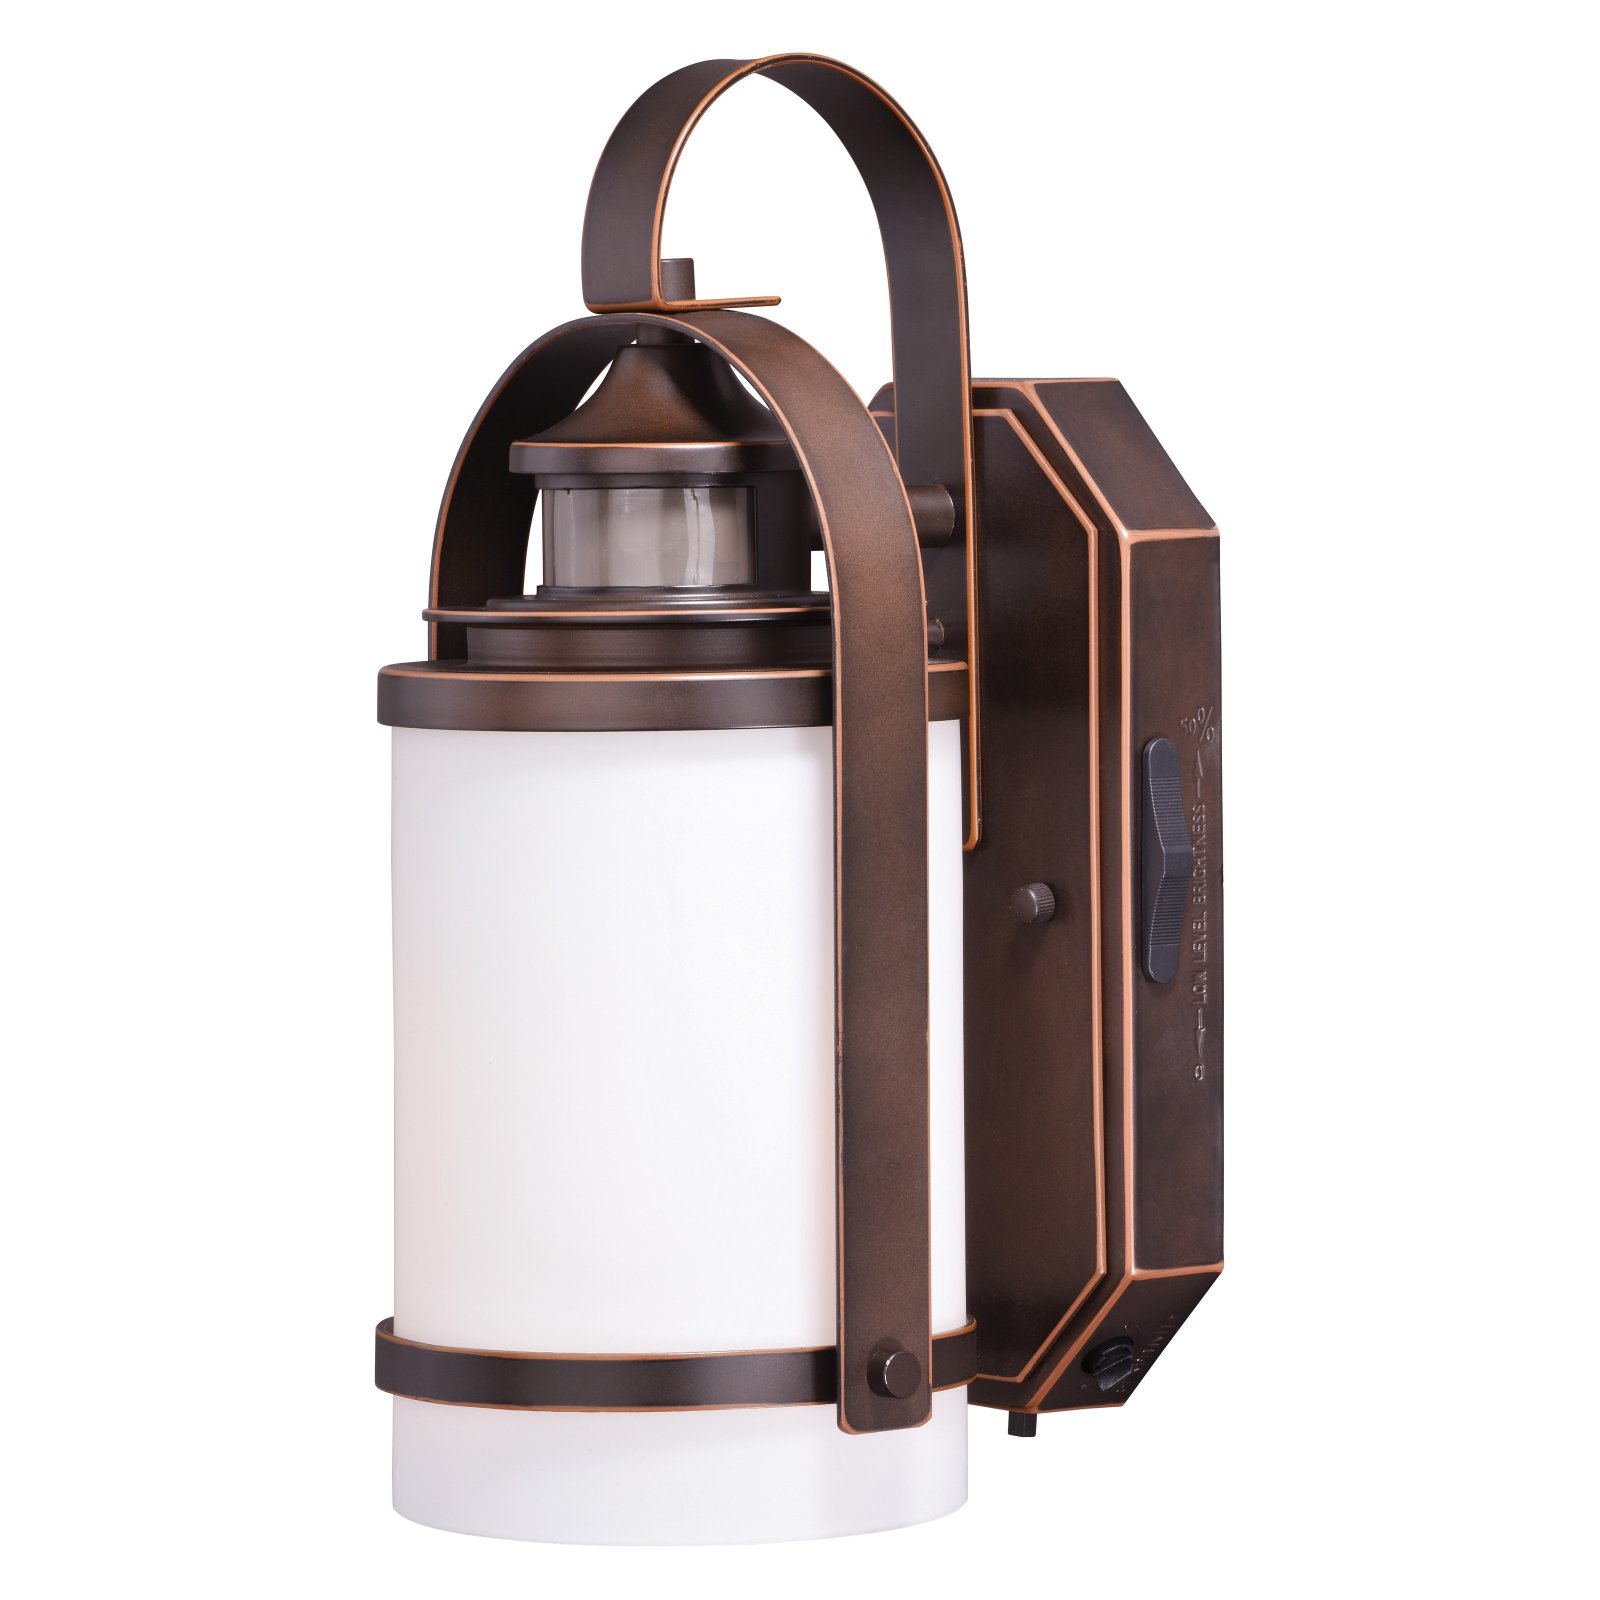 Vaxcel Weston Dualux T0269 Outdoor Wall Light